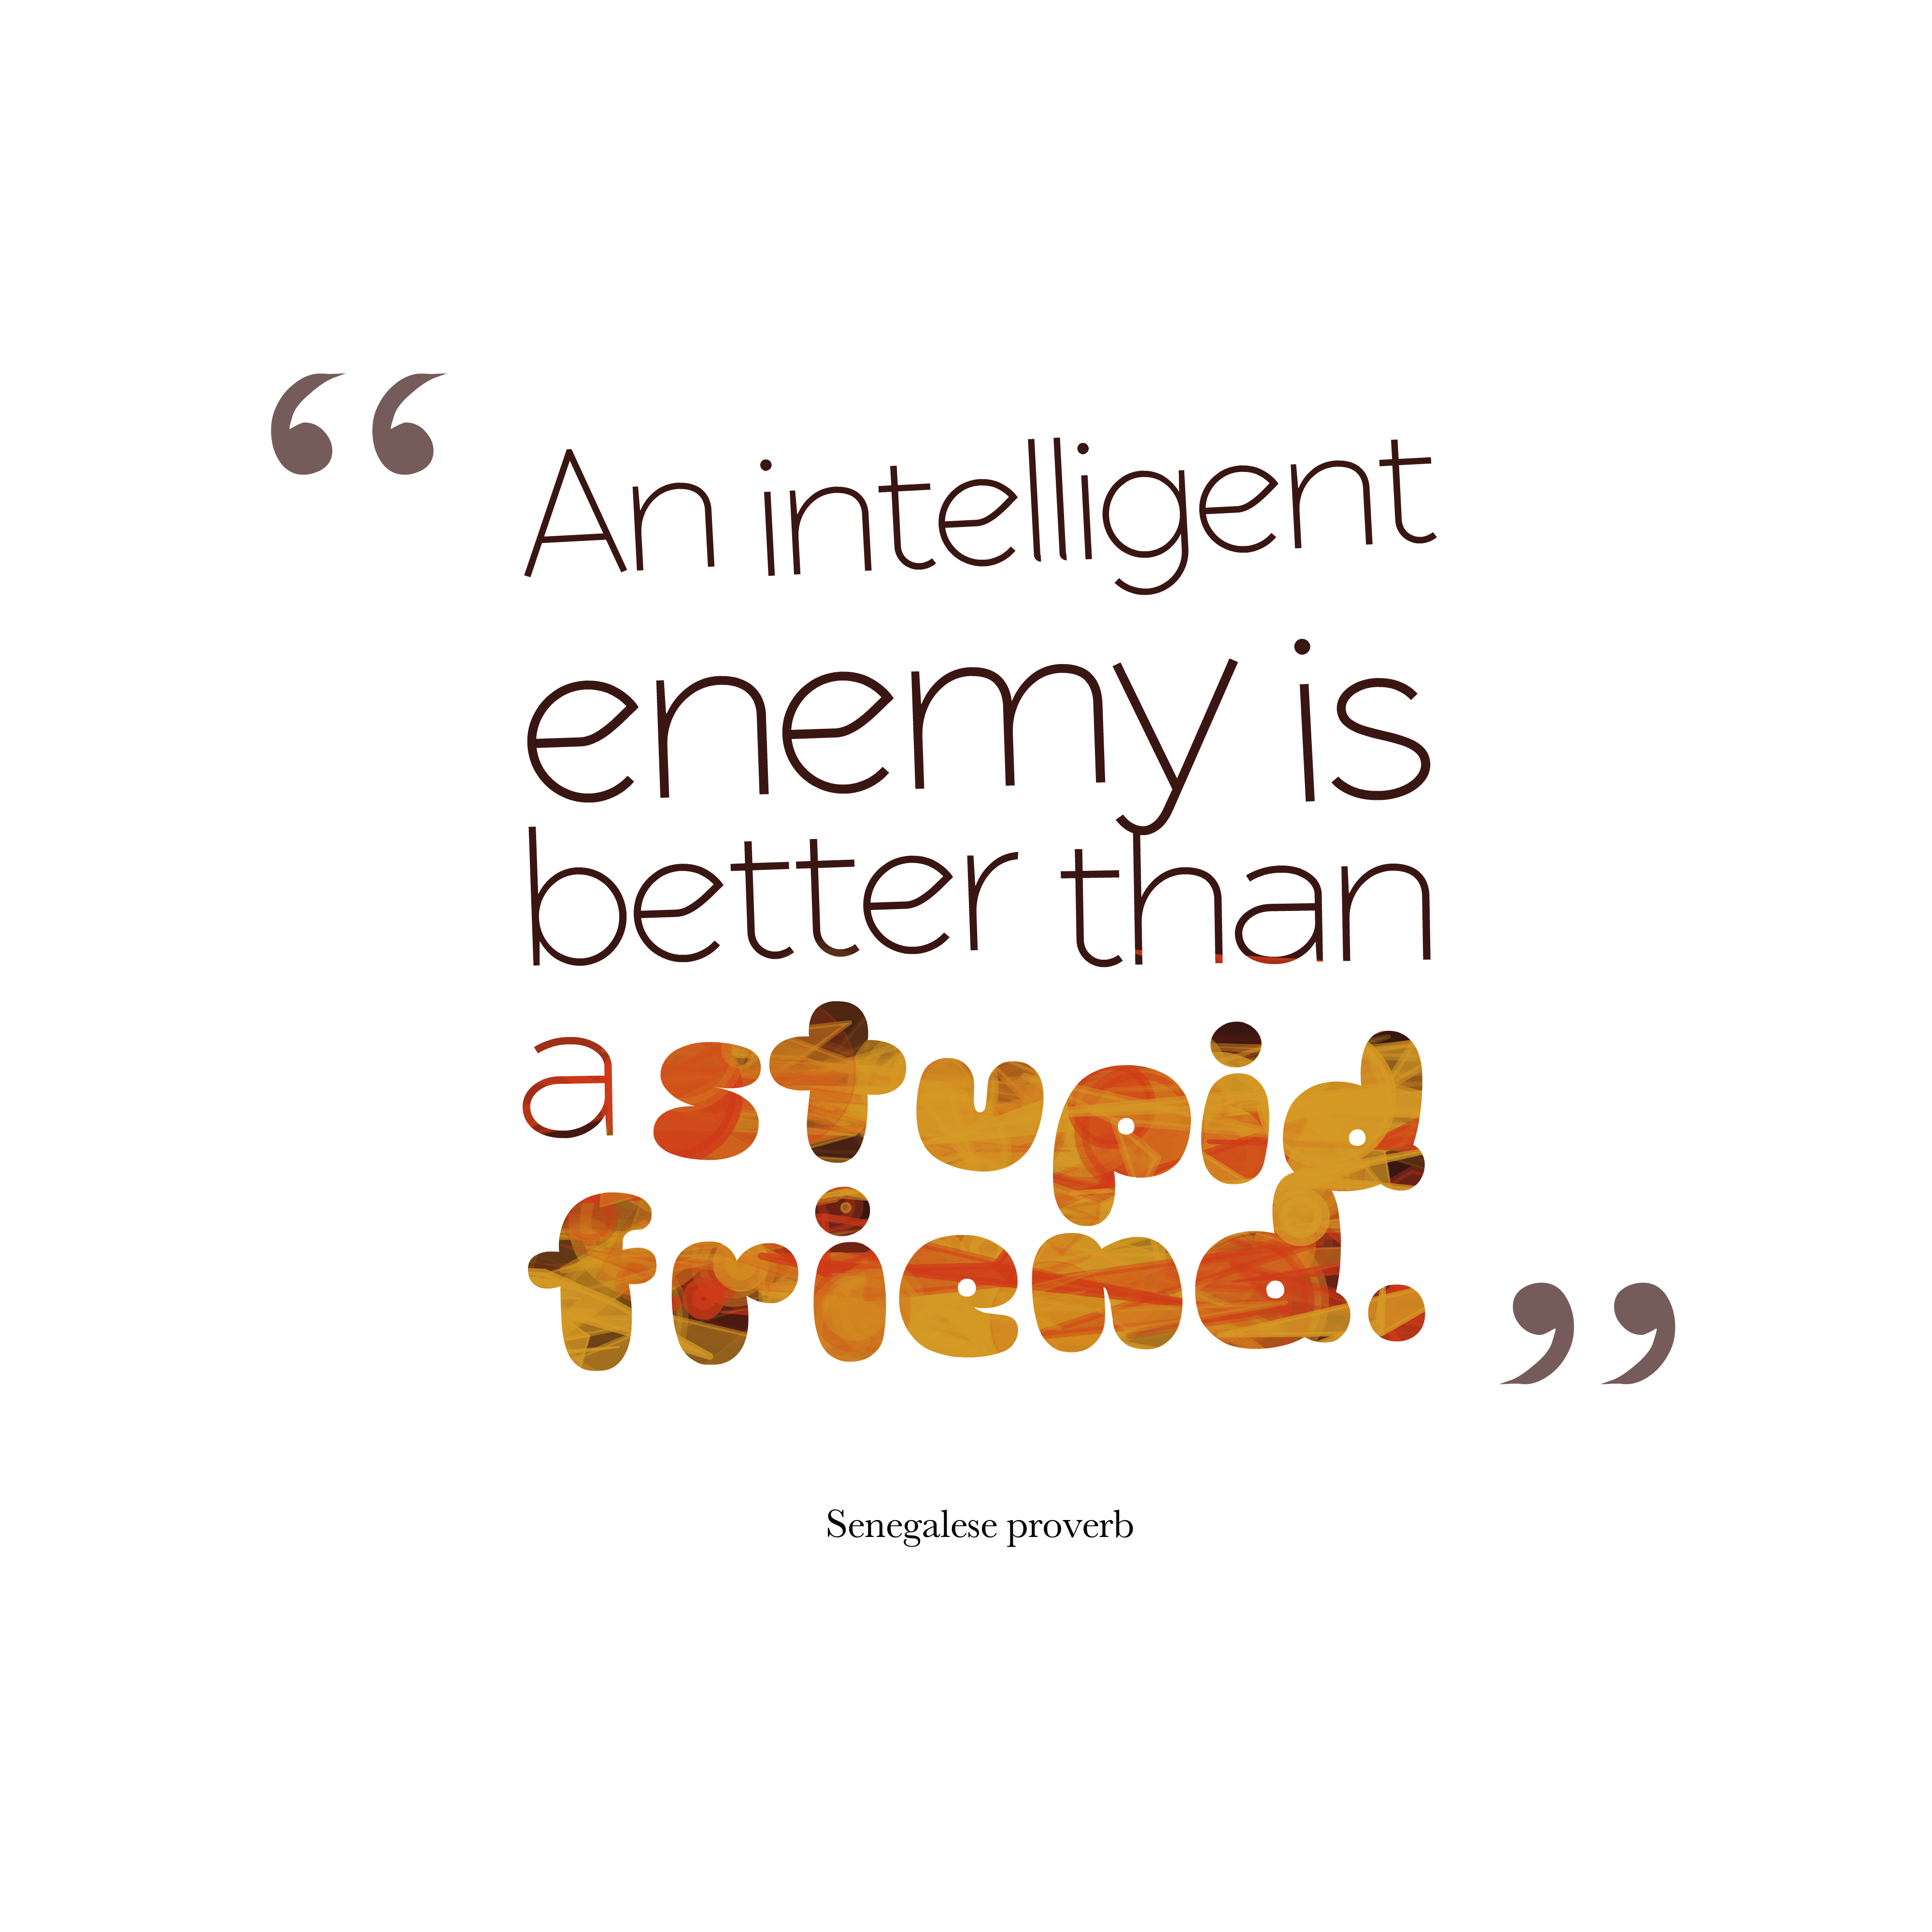 Quotes image of An intelligent enemy is better than a stupid friend.